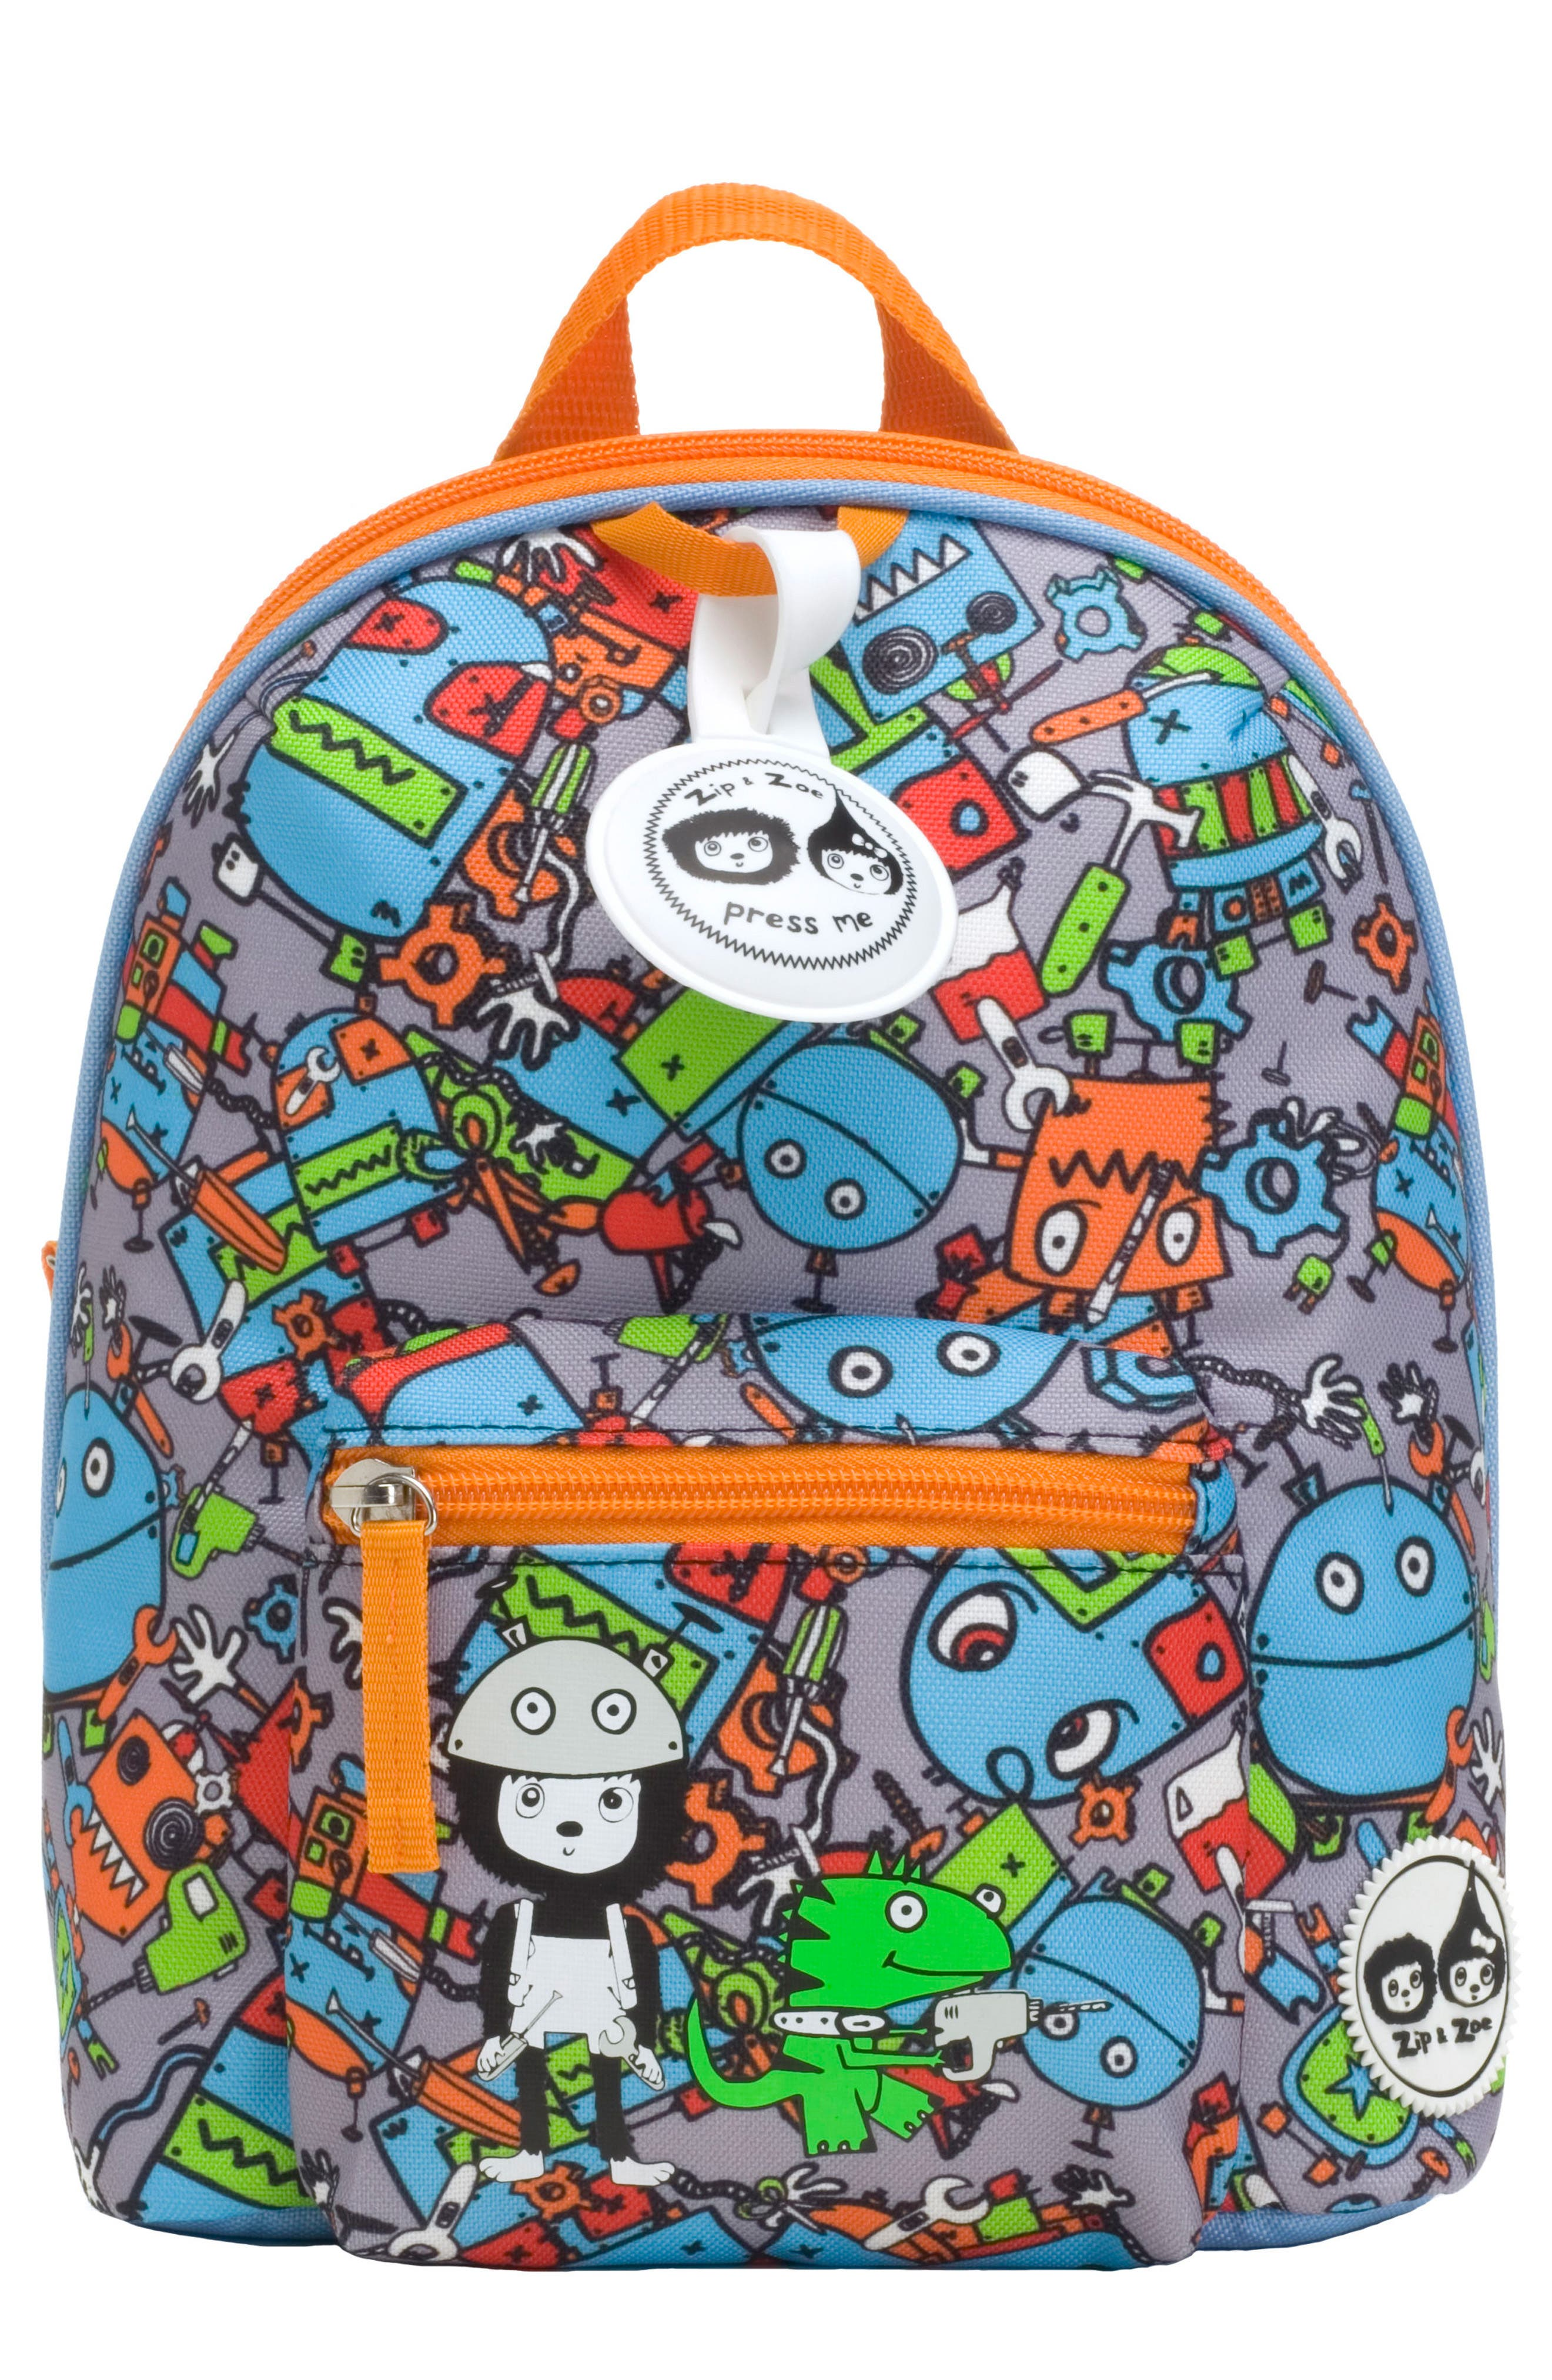 Zip & Zoe Robots Mini Backpack,                         Main,                         color, ROBOTS